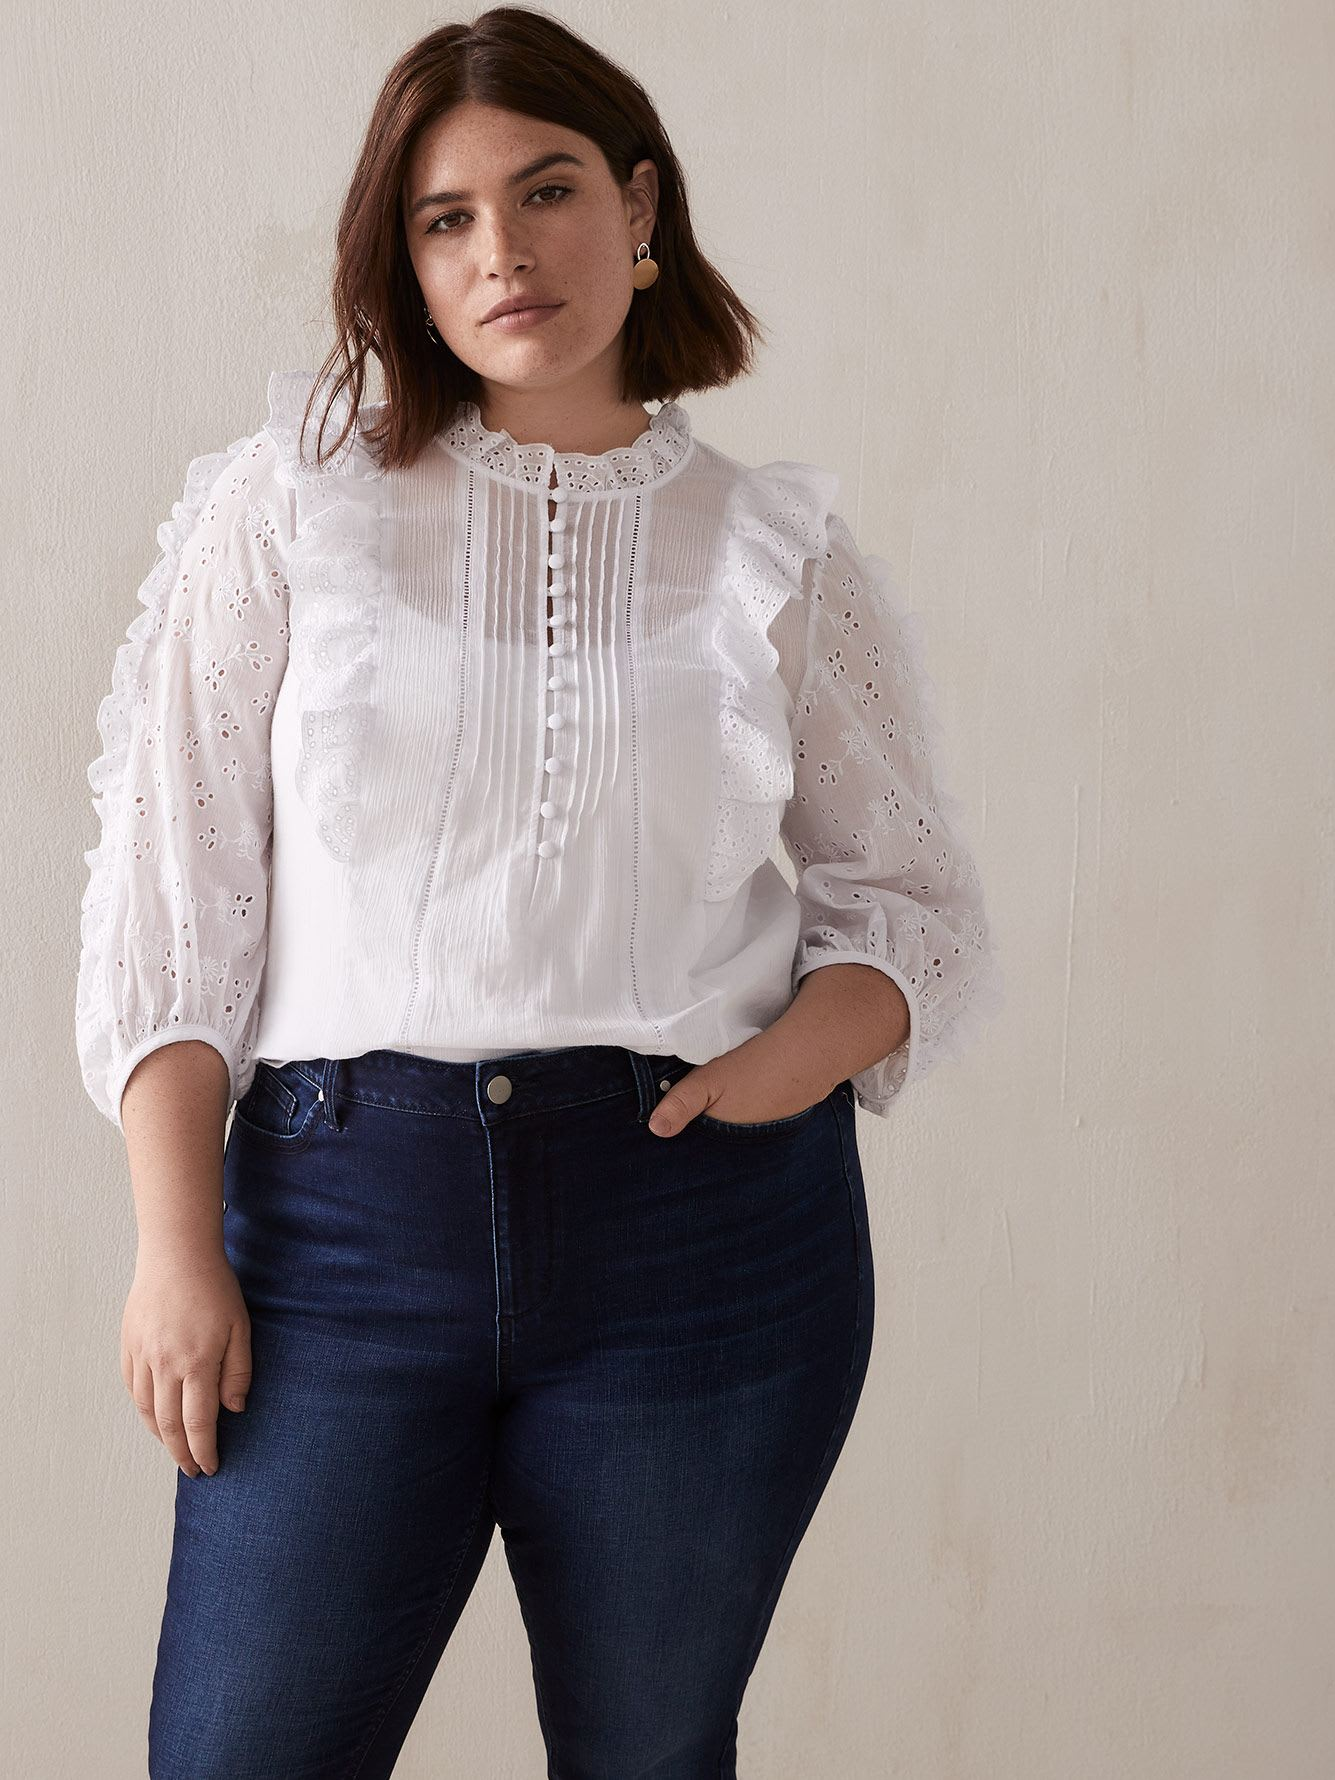 Ruffle Pin-tuck Shirt